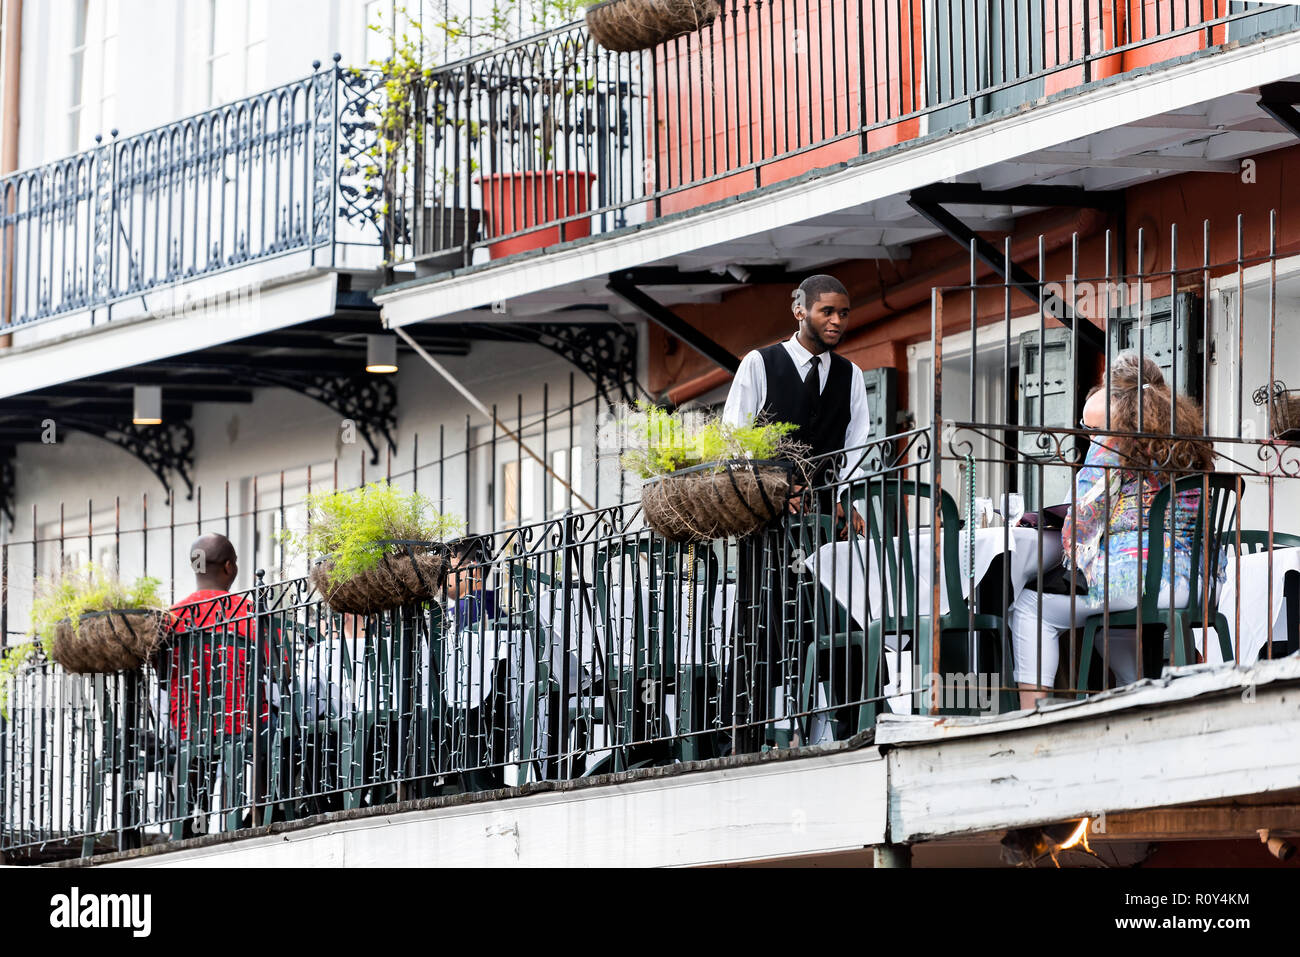 New Orleans, USA - April 22, 2018: Old town Bourbon Decatur street in Louisiana town, city, cast iron balcony building, waiter, people sitting in rest - Stock Image